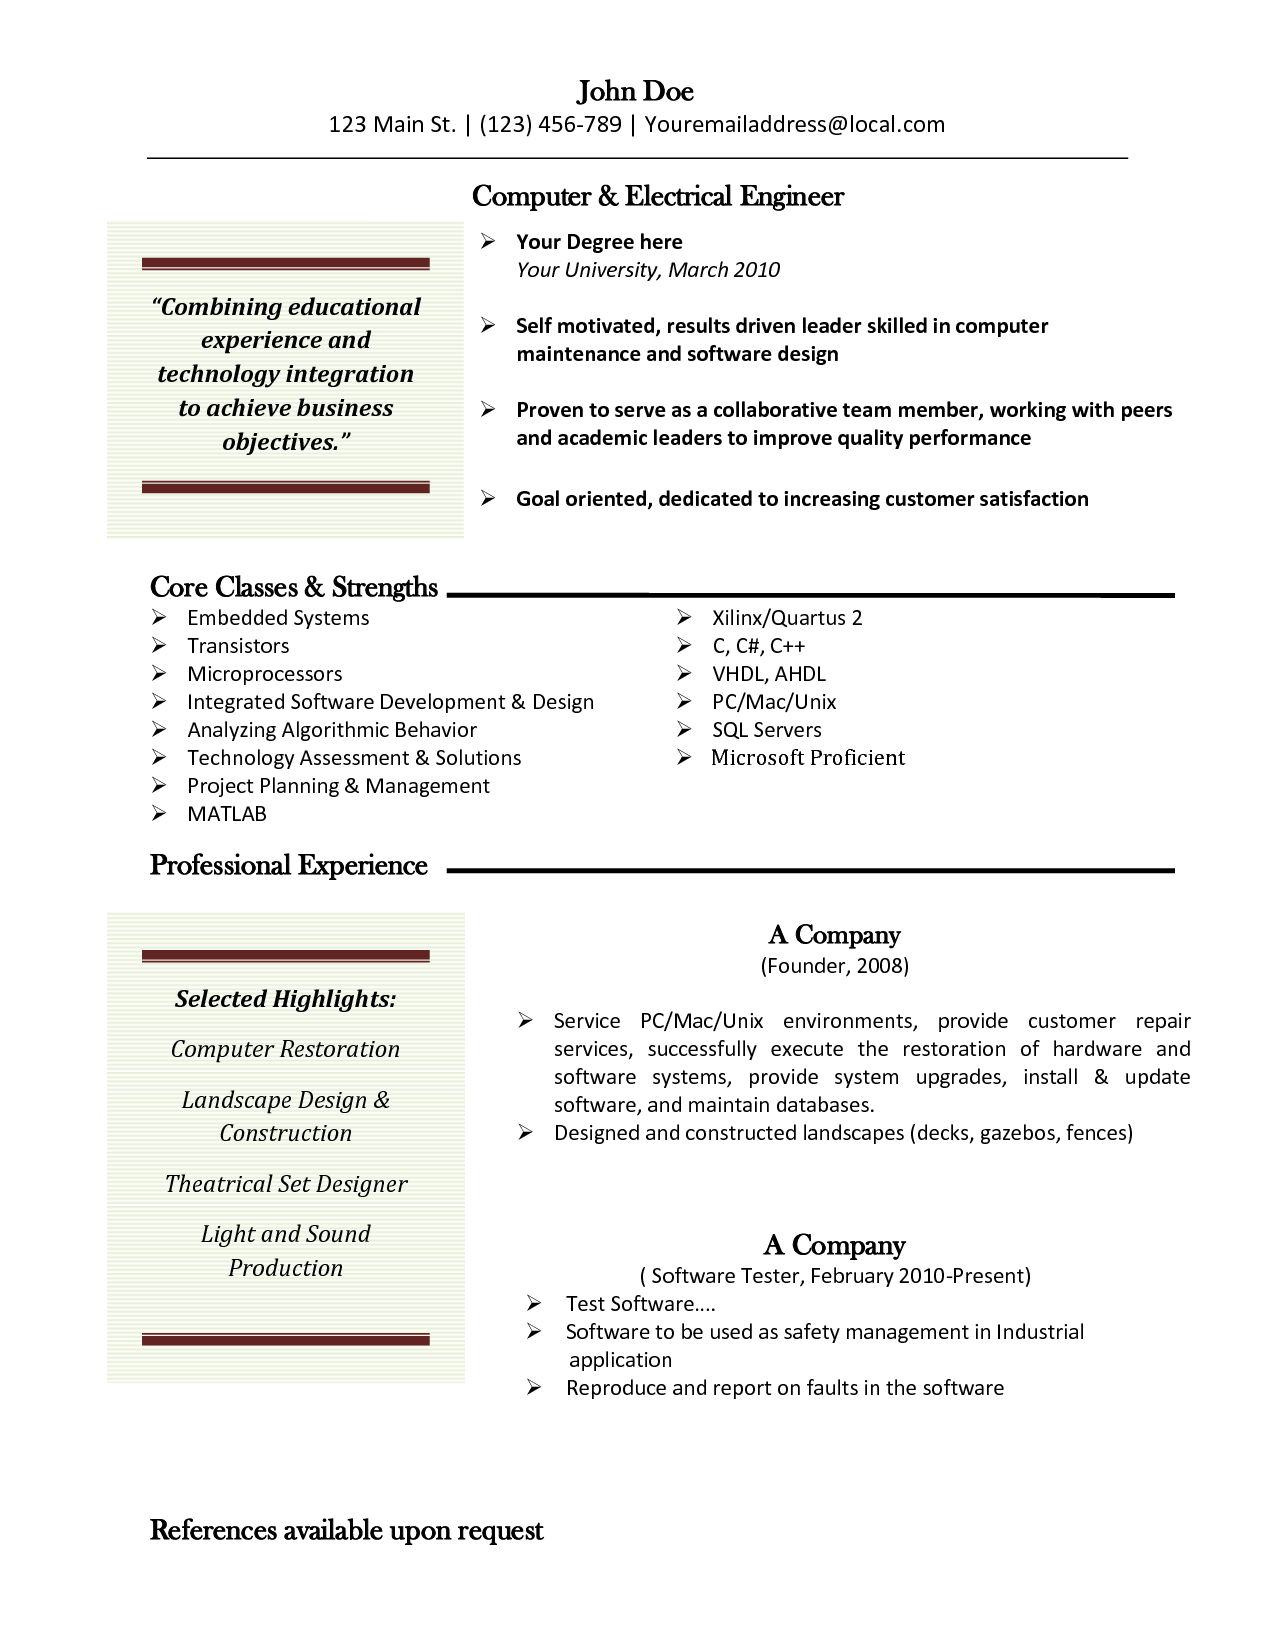 Free Downloadable Resume Templates For Word 2010 Freeresumetemplatesformaccqjykibi 1275×1650  Cv